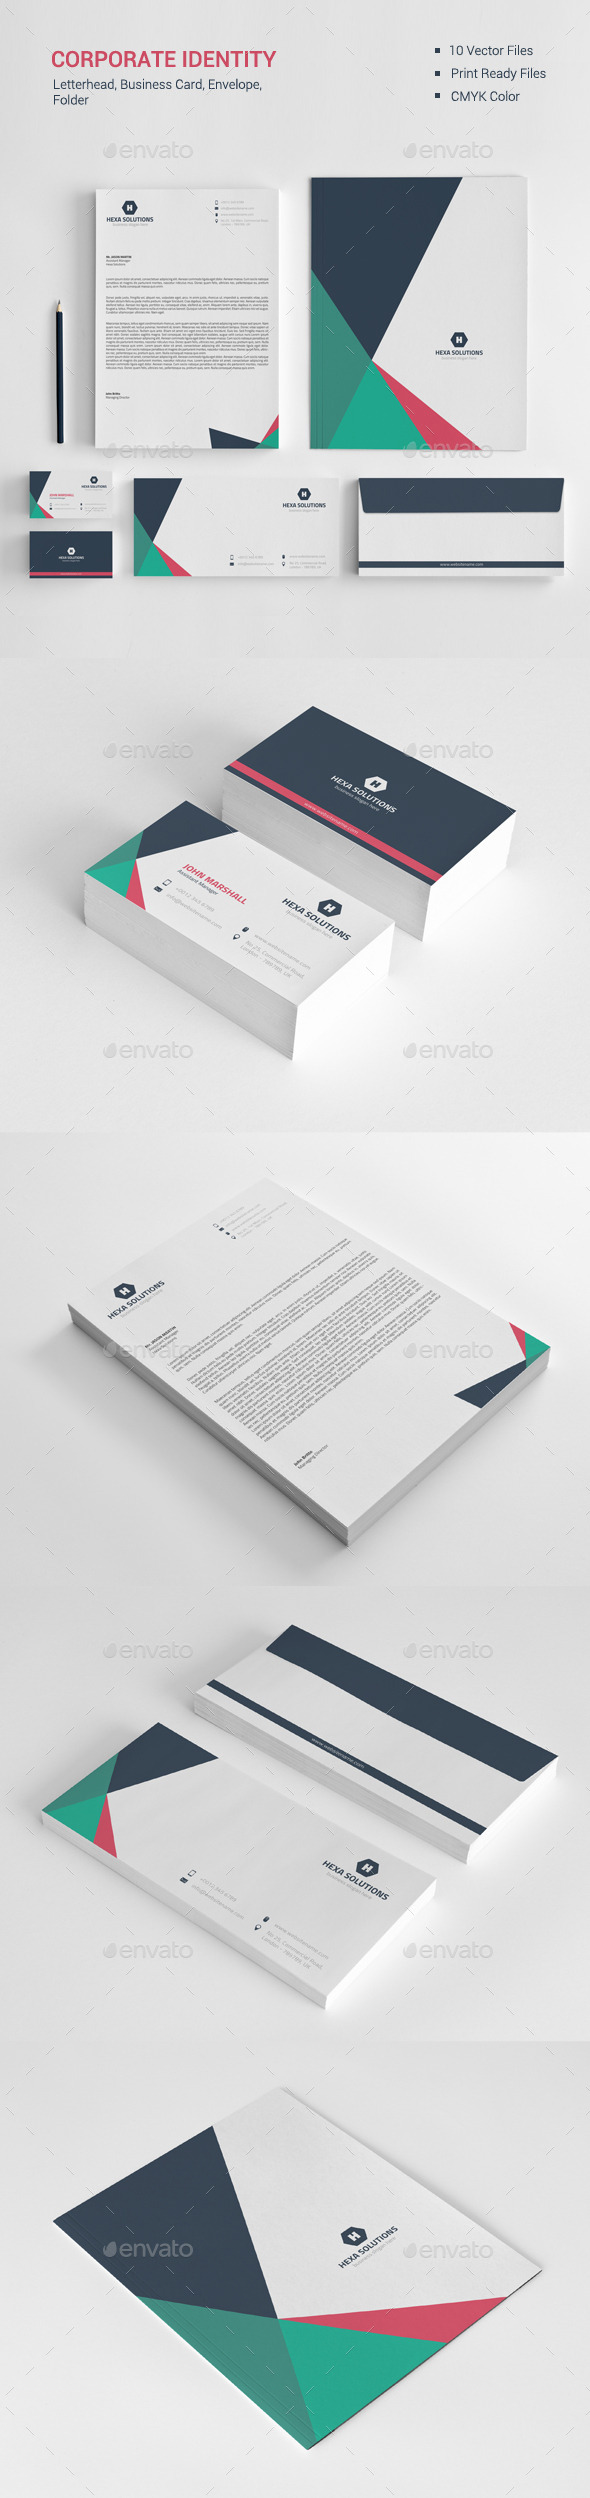 Corporate Identity 04 - Stationery Print Templates